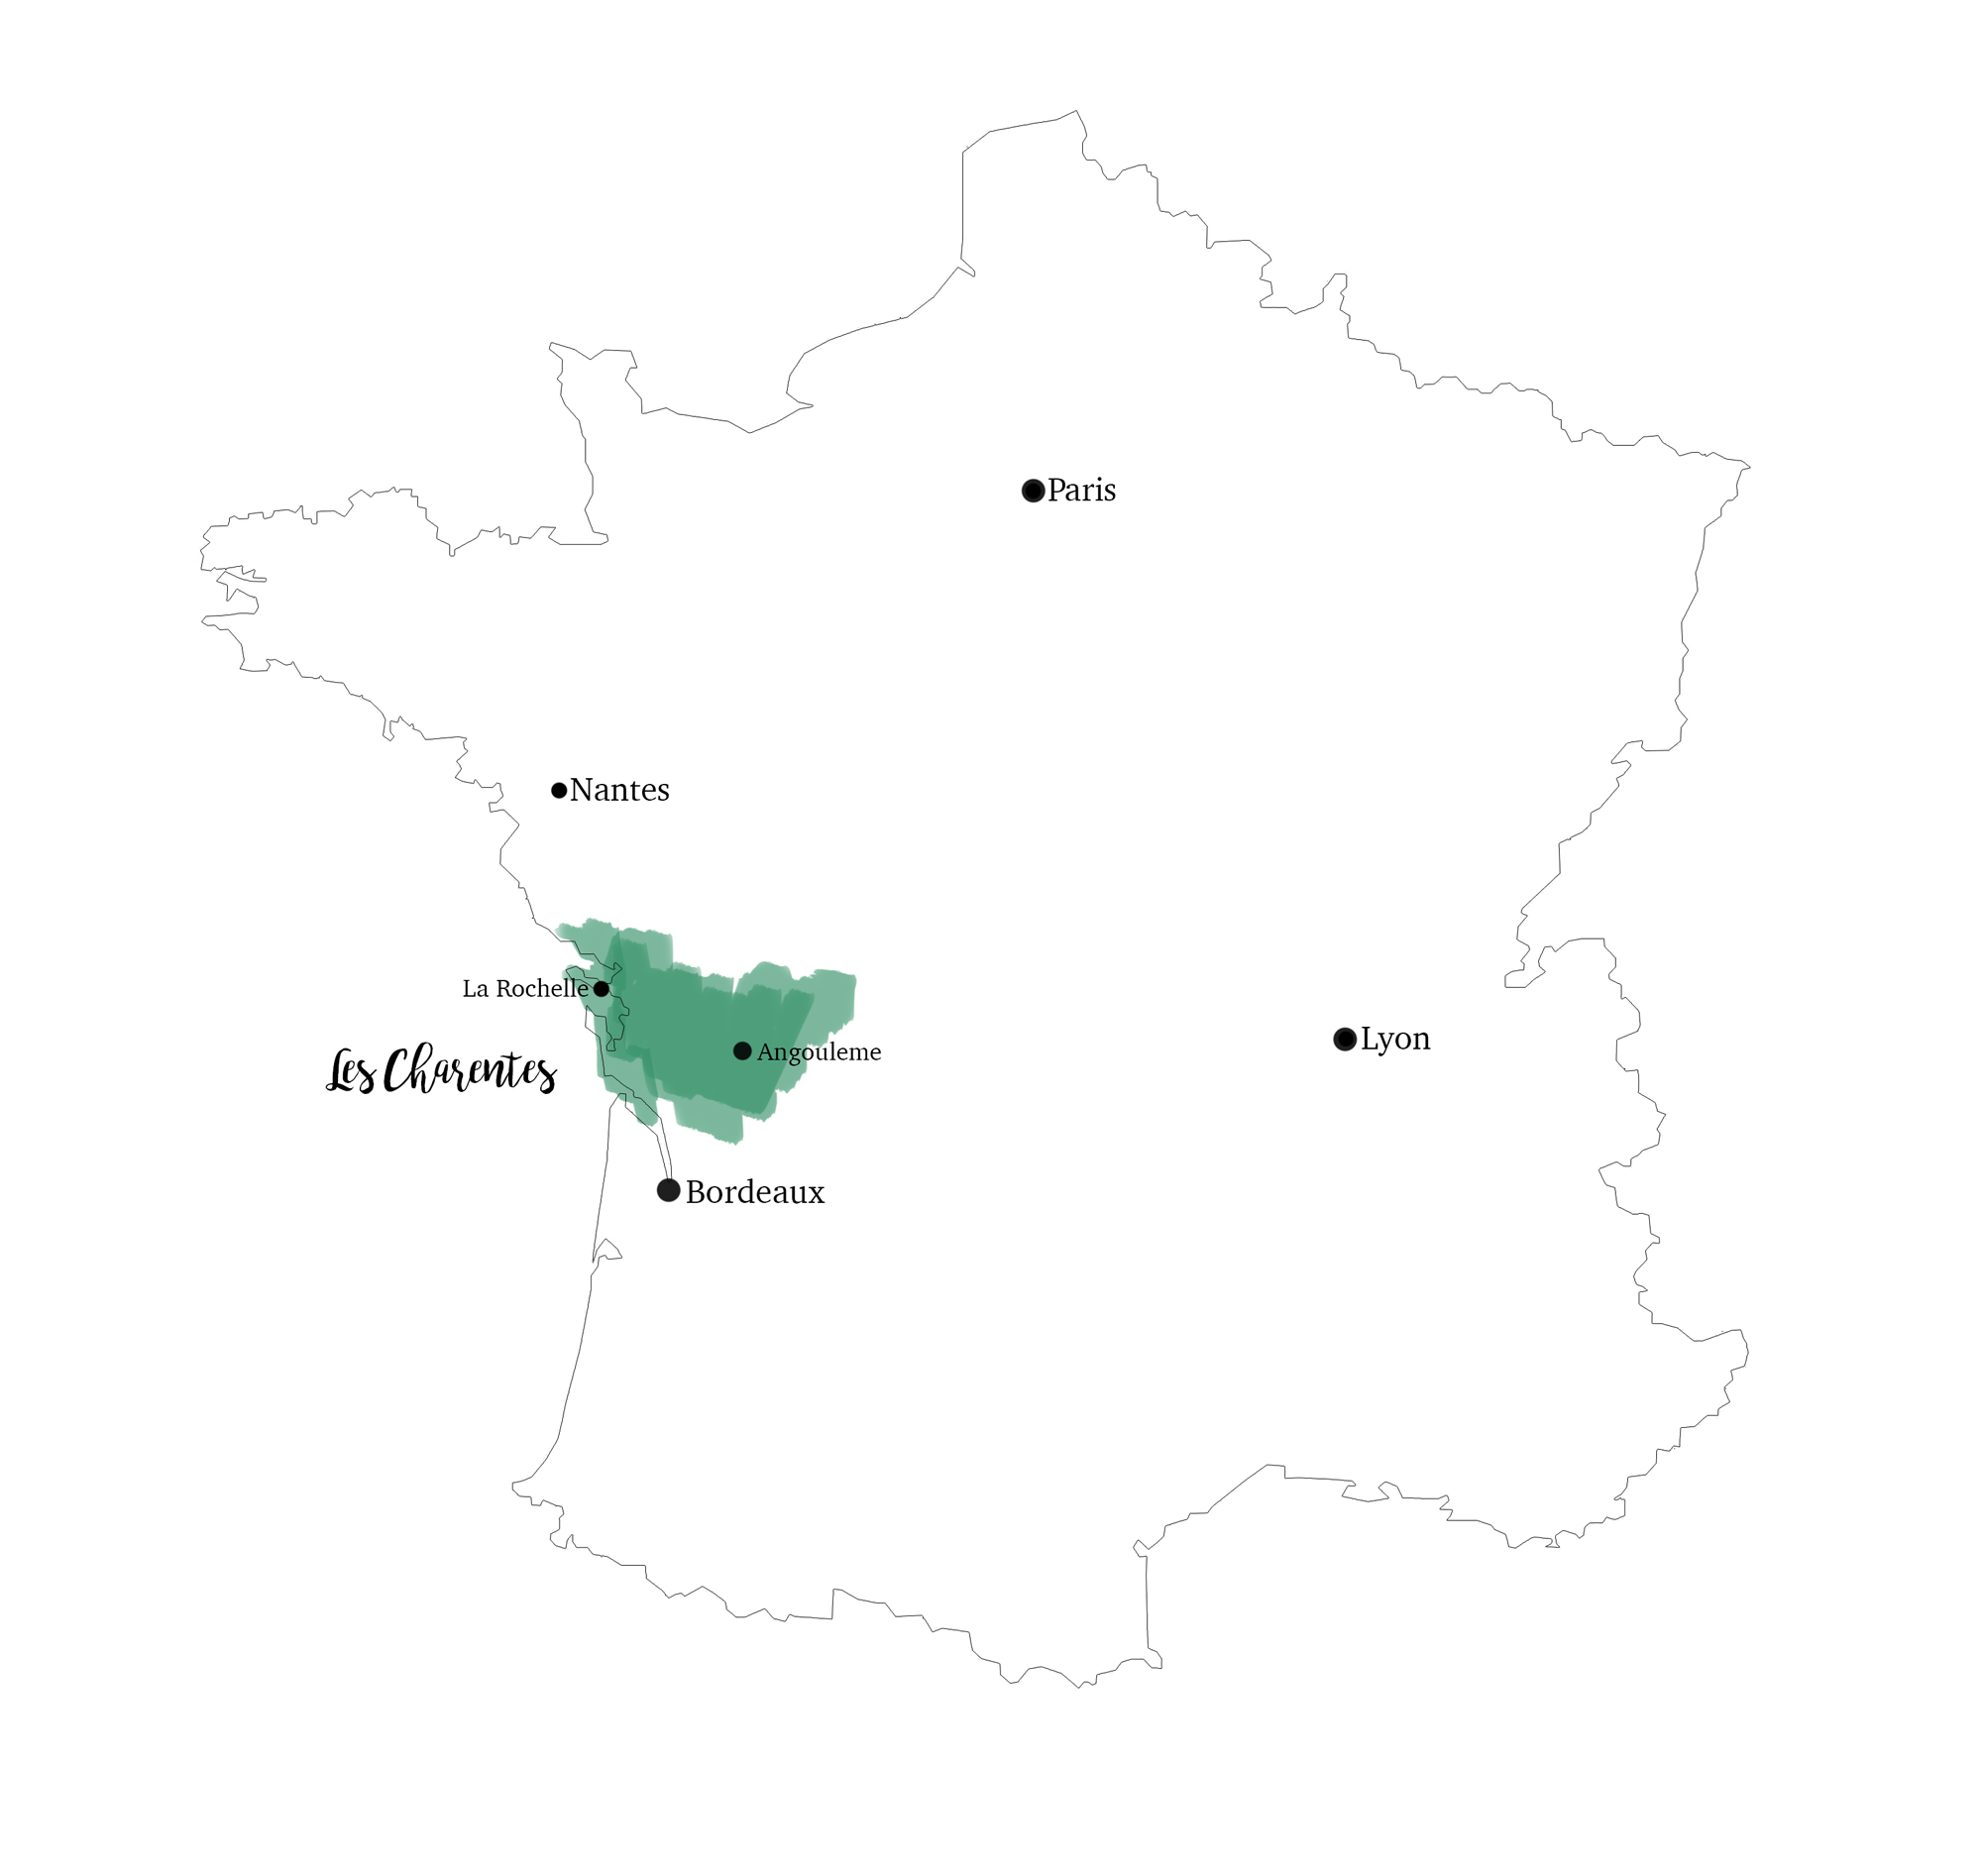 Les Charentes, Carte, Un Tour en France